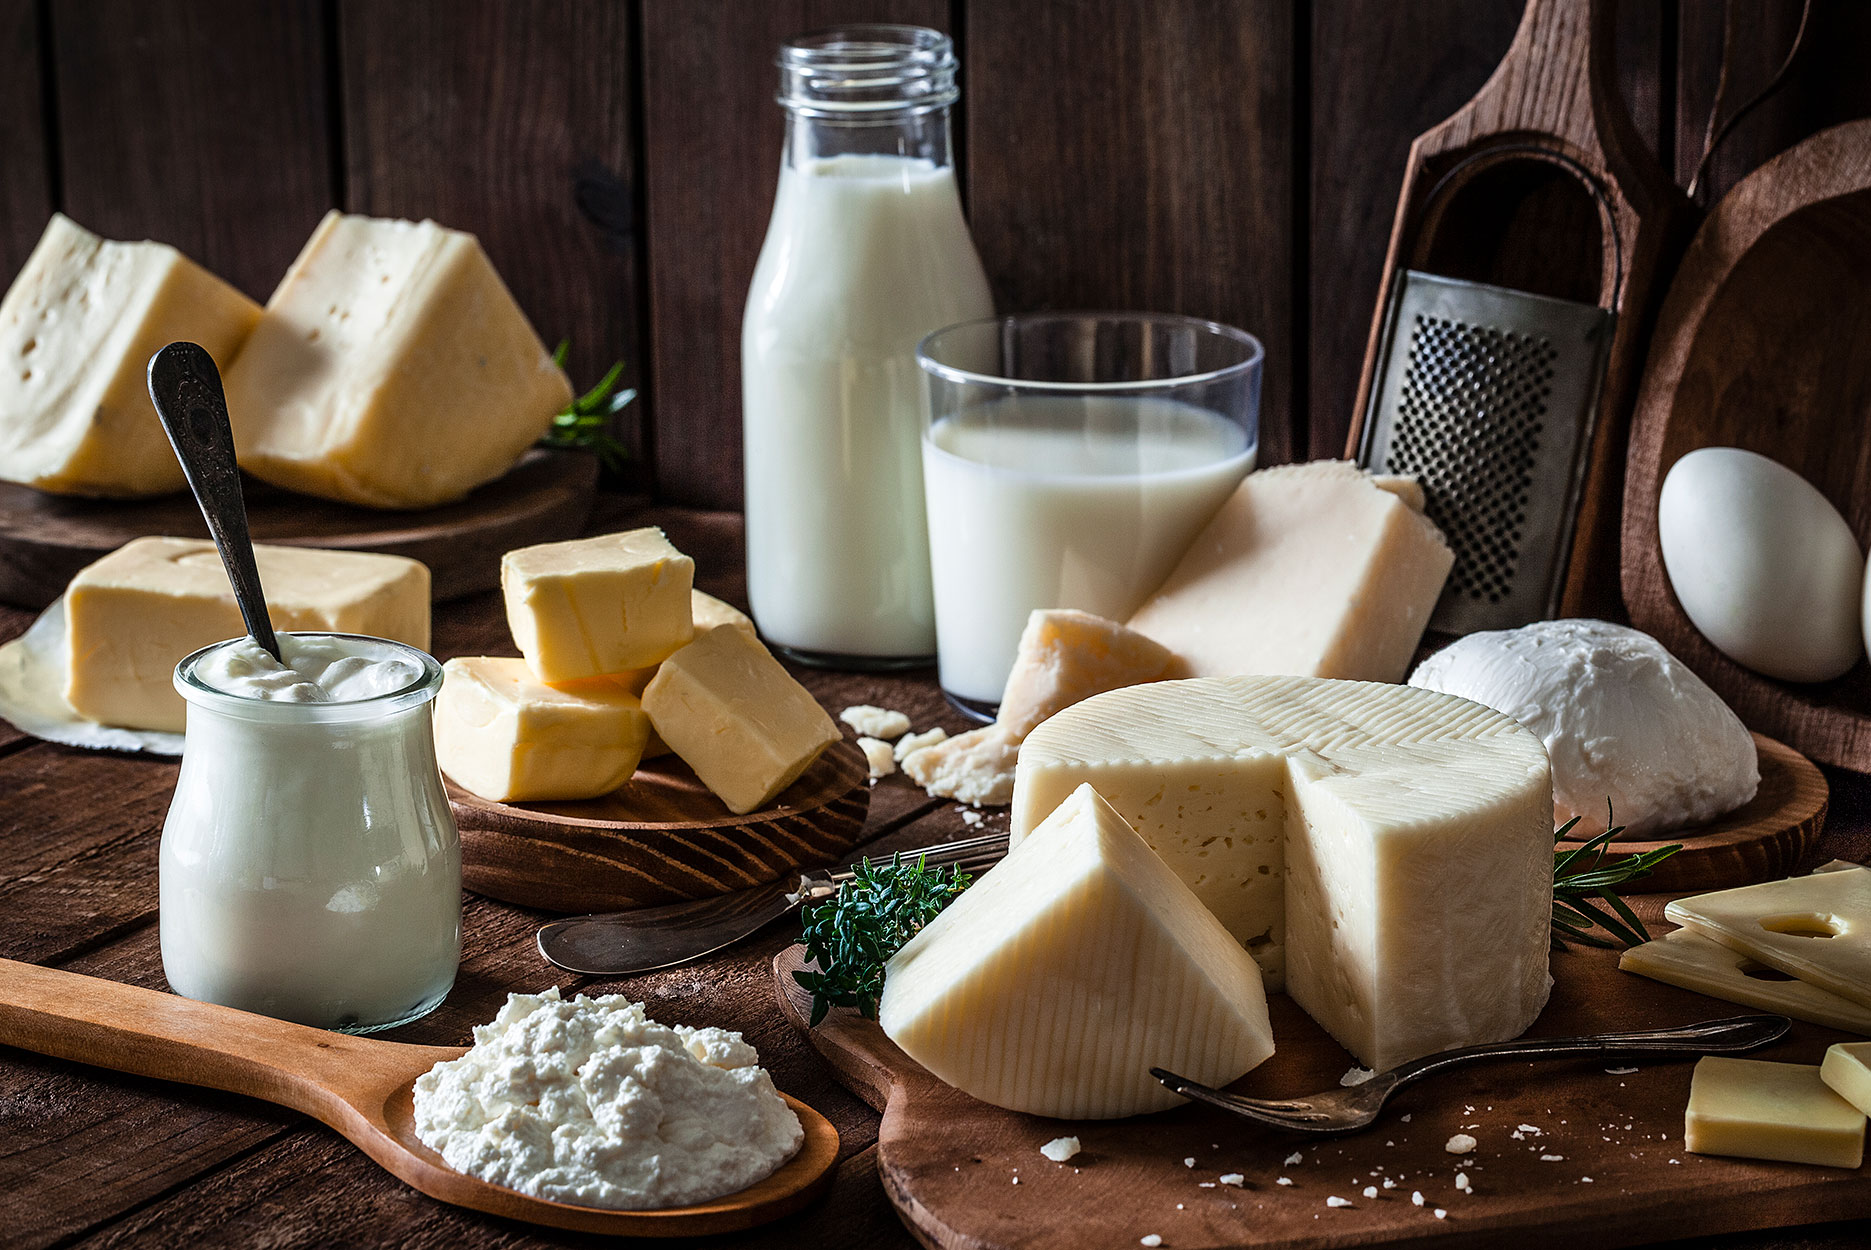 Dairy products assortment shot on rustic wooden table